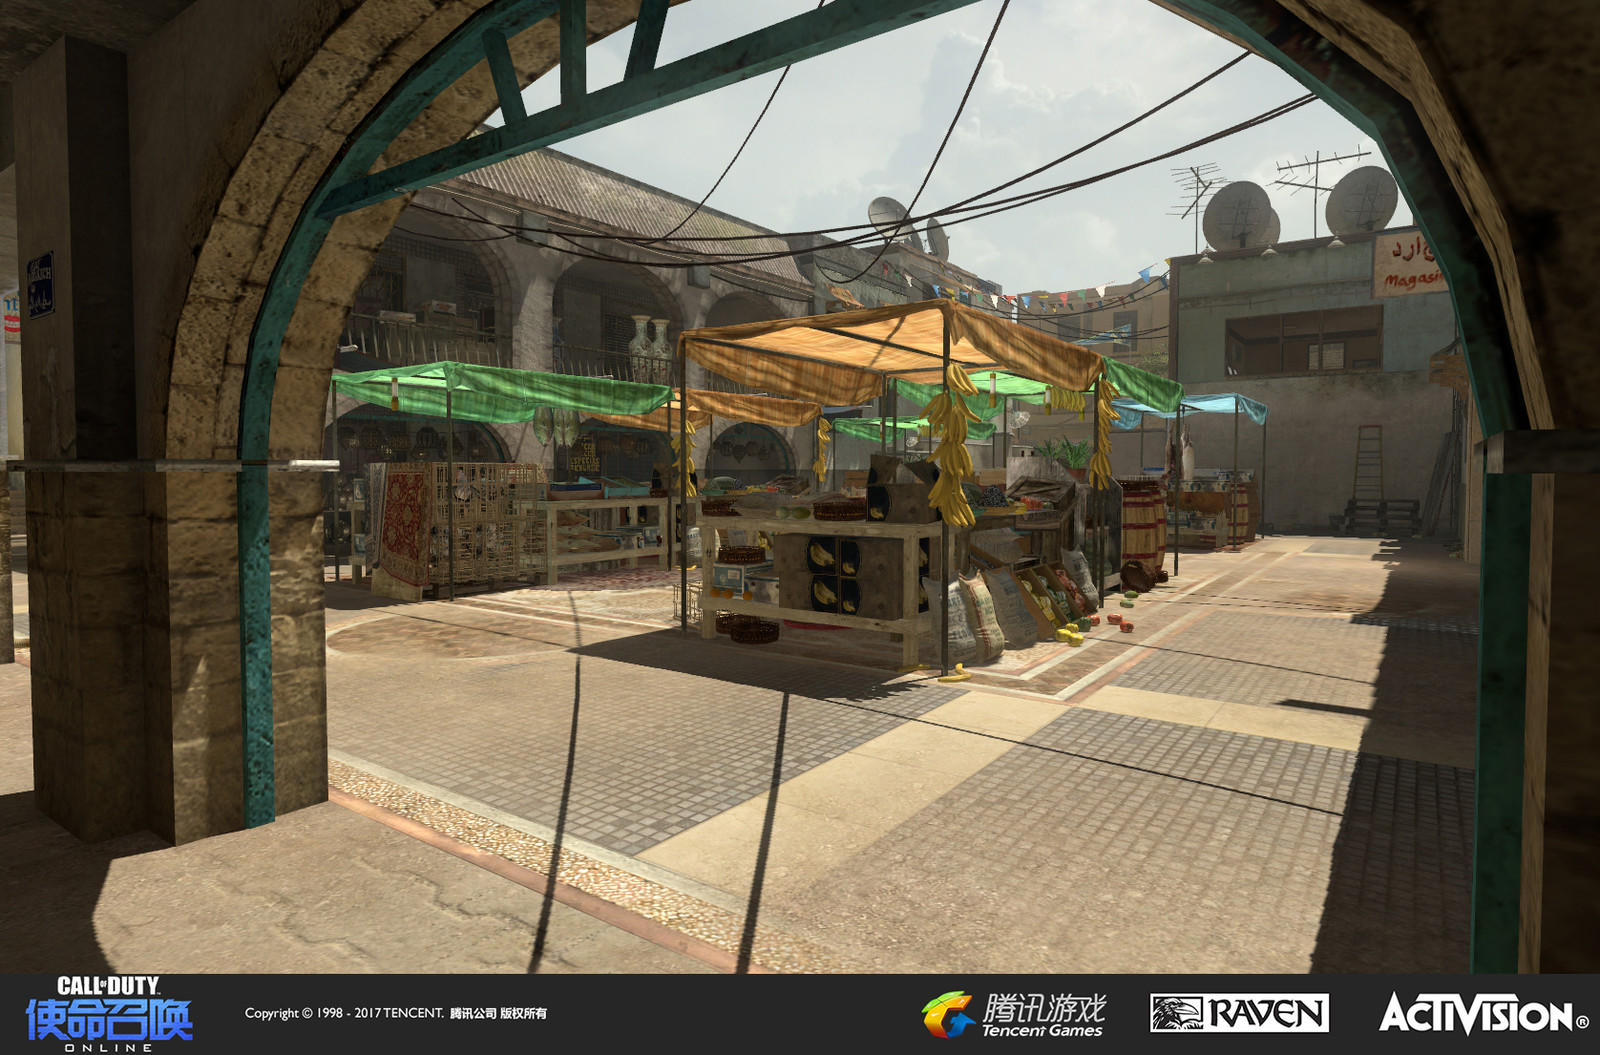 Seatown: A re-imagined multiplayer map originally appearing in Modern Warfare 3. I created the terrain and set dress in this market area (with exception to the market stall cloth tops).